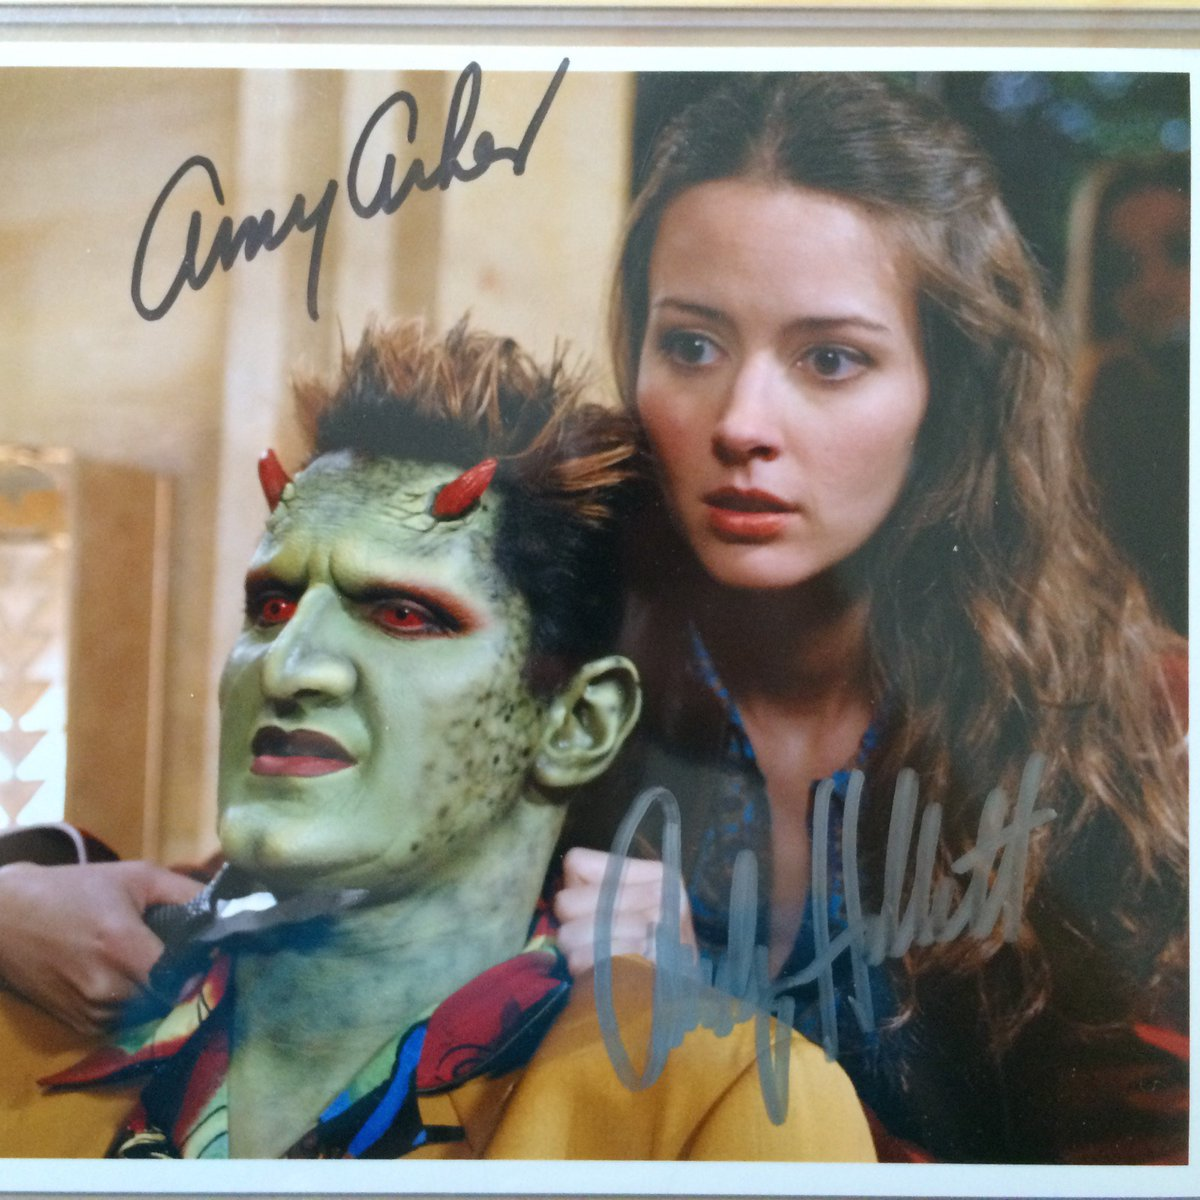 We're auctioning this still signed by Amy Acker and the late Andy Hallet on Nov 8! Help us spread the signal. https://t.co/PXw9xscPxN